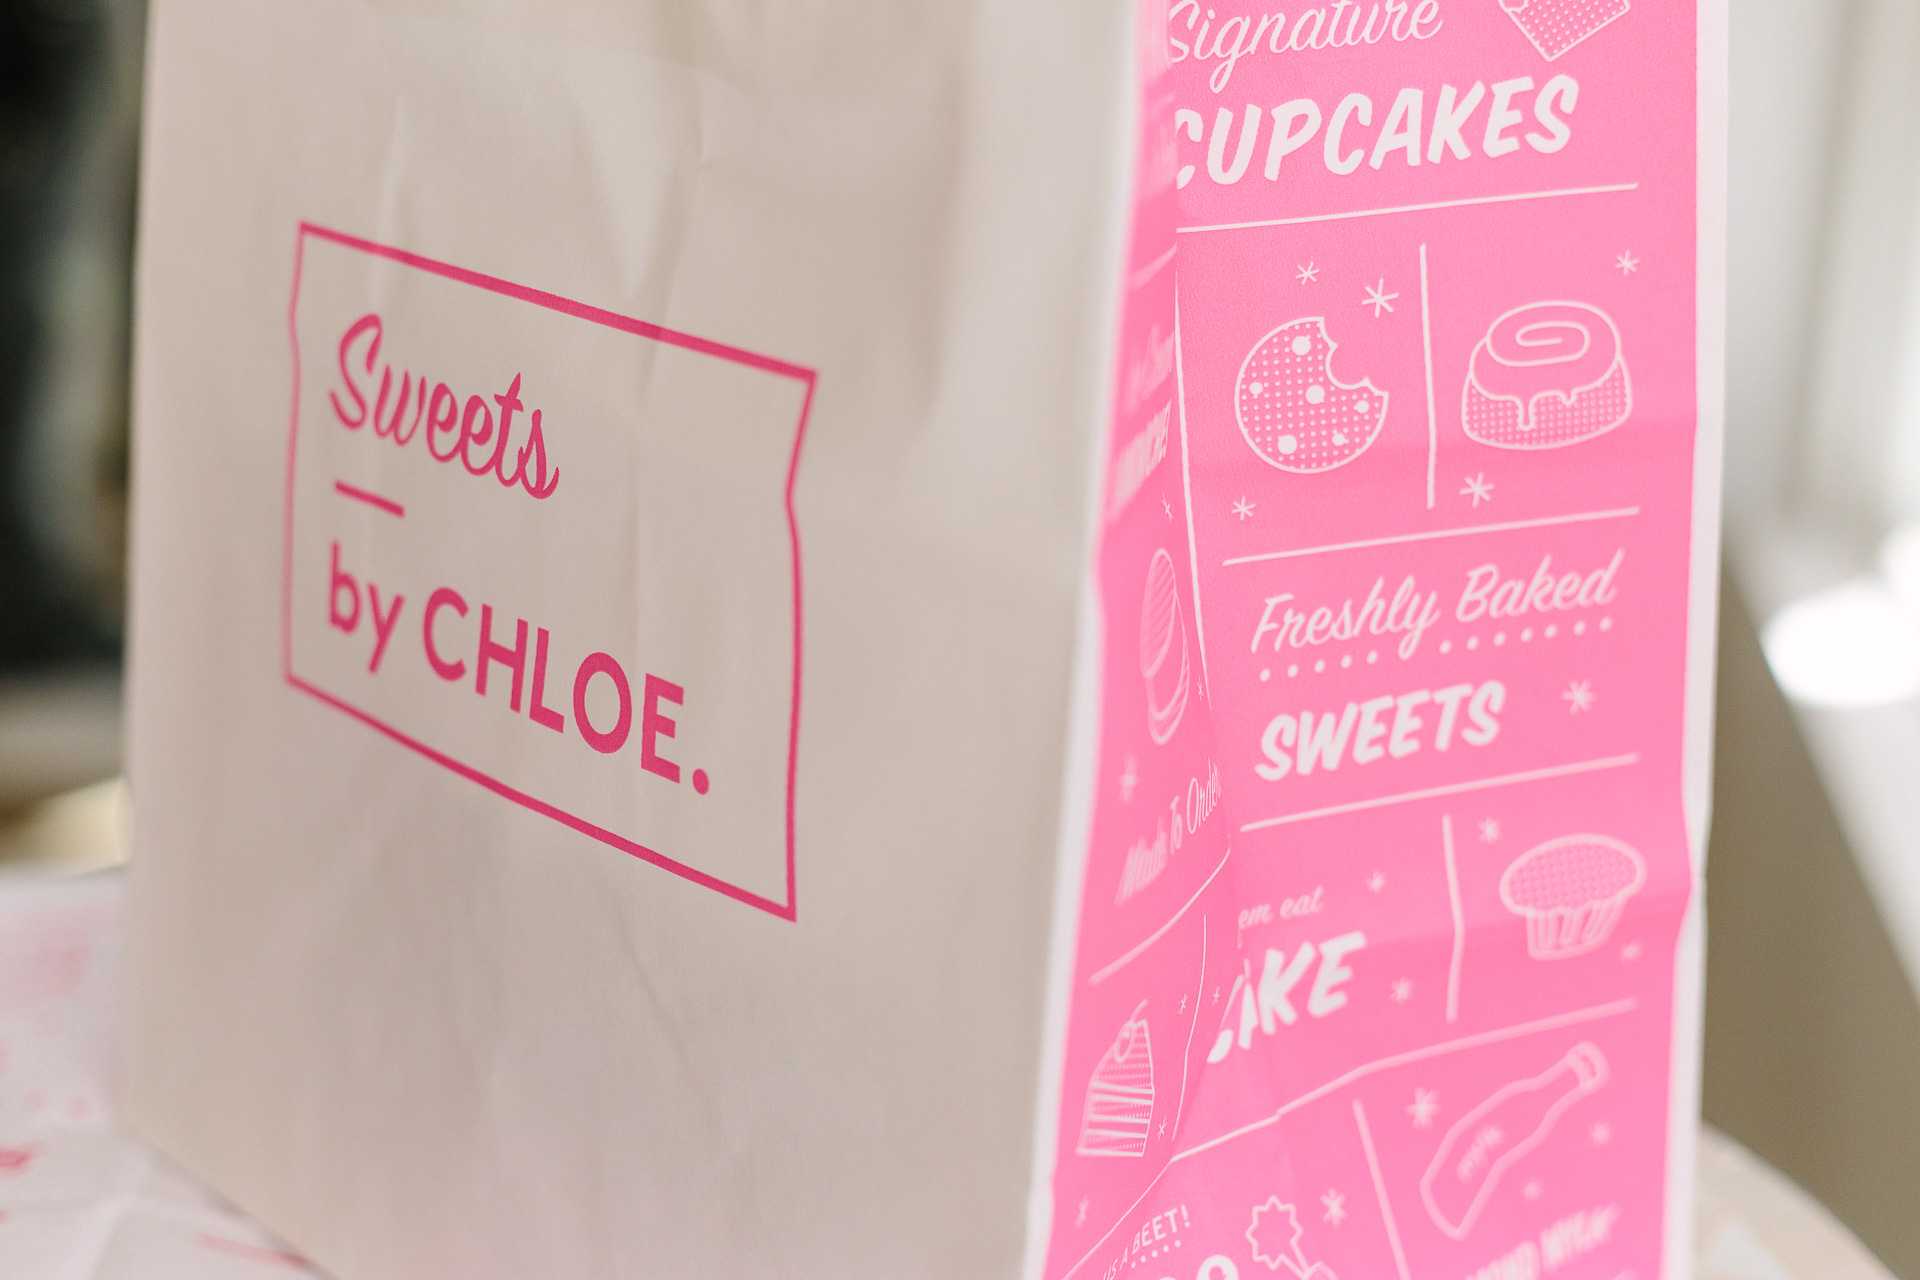 sweets-by-chloe-nyc-3277